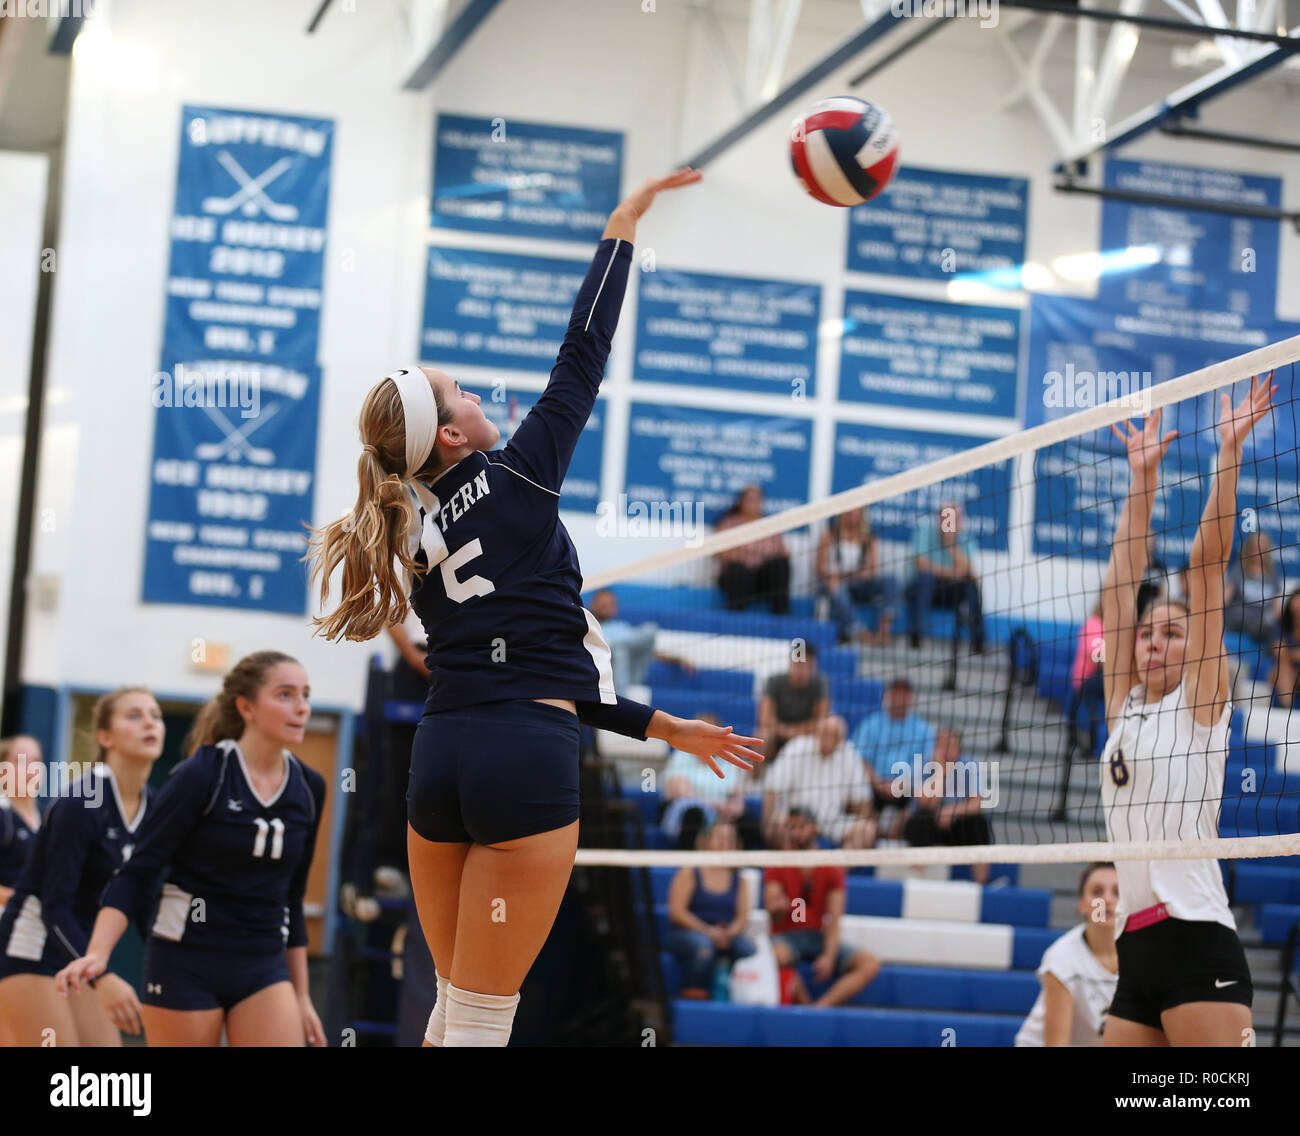 Girls high school volleyball game in a high school gym - Stock Image